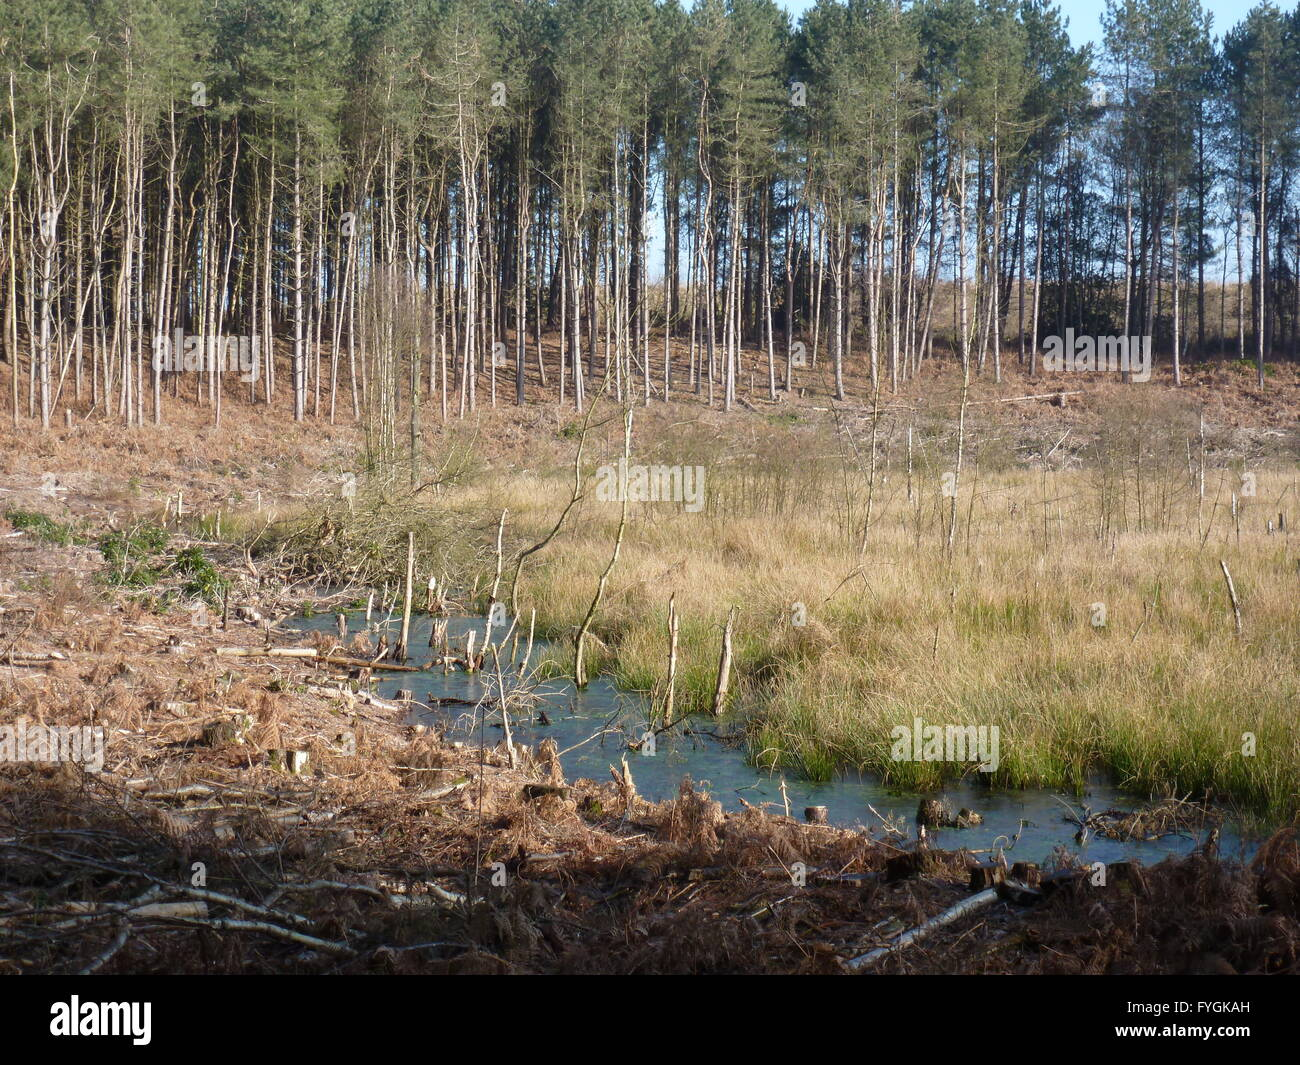 Hogshead Moss at Delamere Cheshire - Stock Image